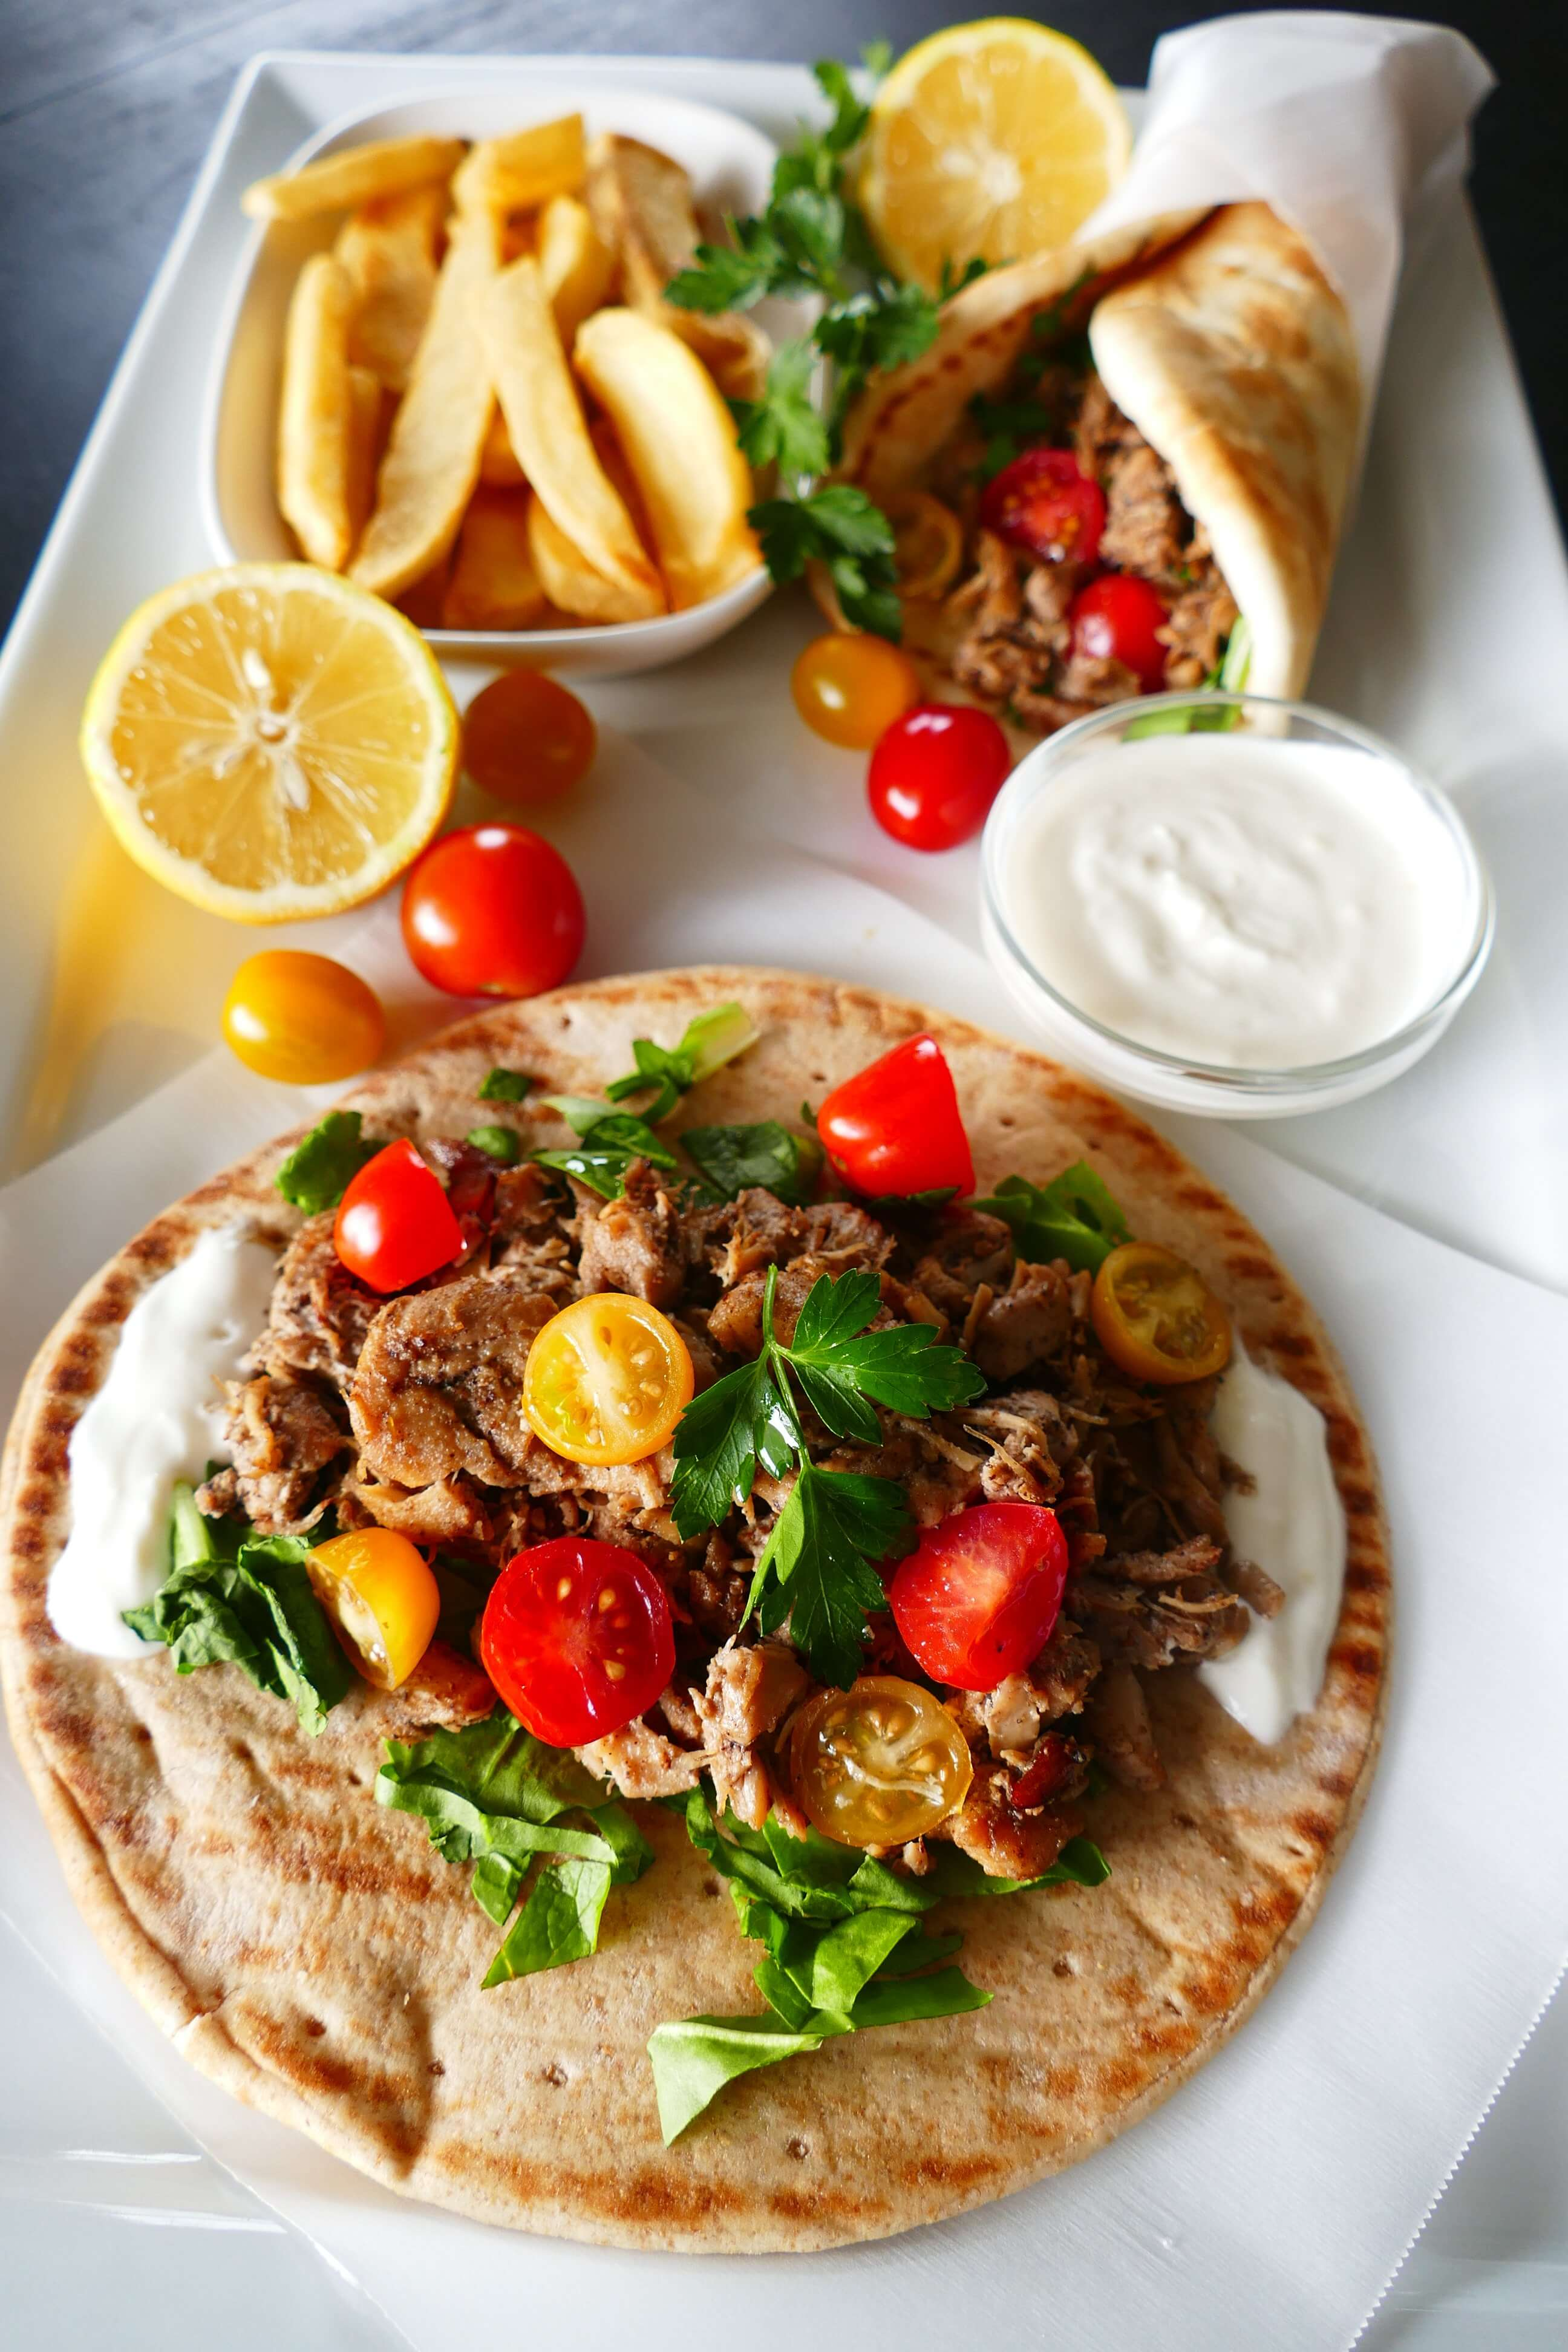 Instant Pot Chicken Shawarma - pita with white sauce, chicken, salad greens, halved cherry yellow and red tomatoes on parchment placed on a large white plate with French fries and white sauce and folded shawarma